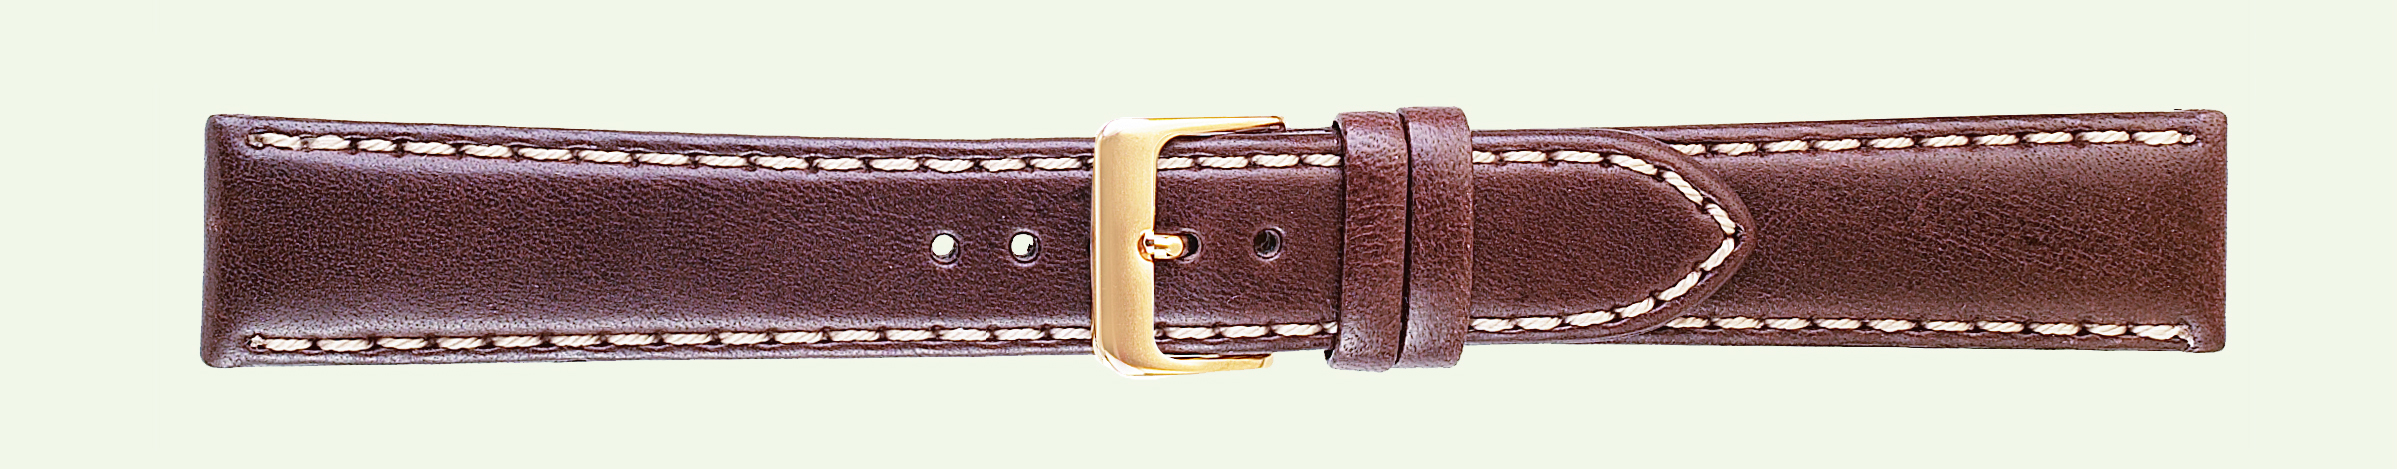 16MM Saddle Stitched Brown Leather Band-0